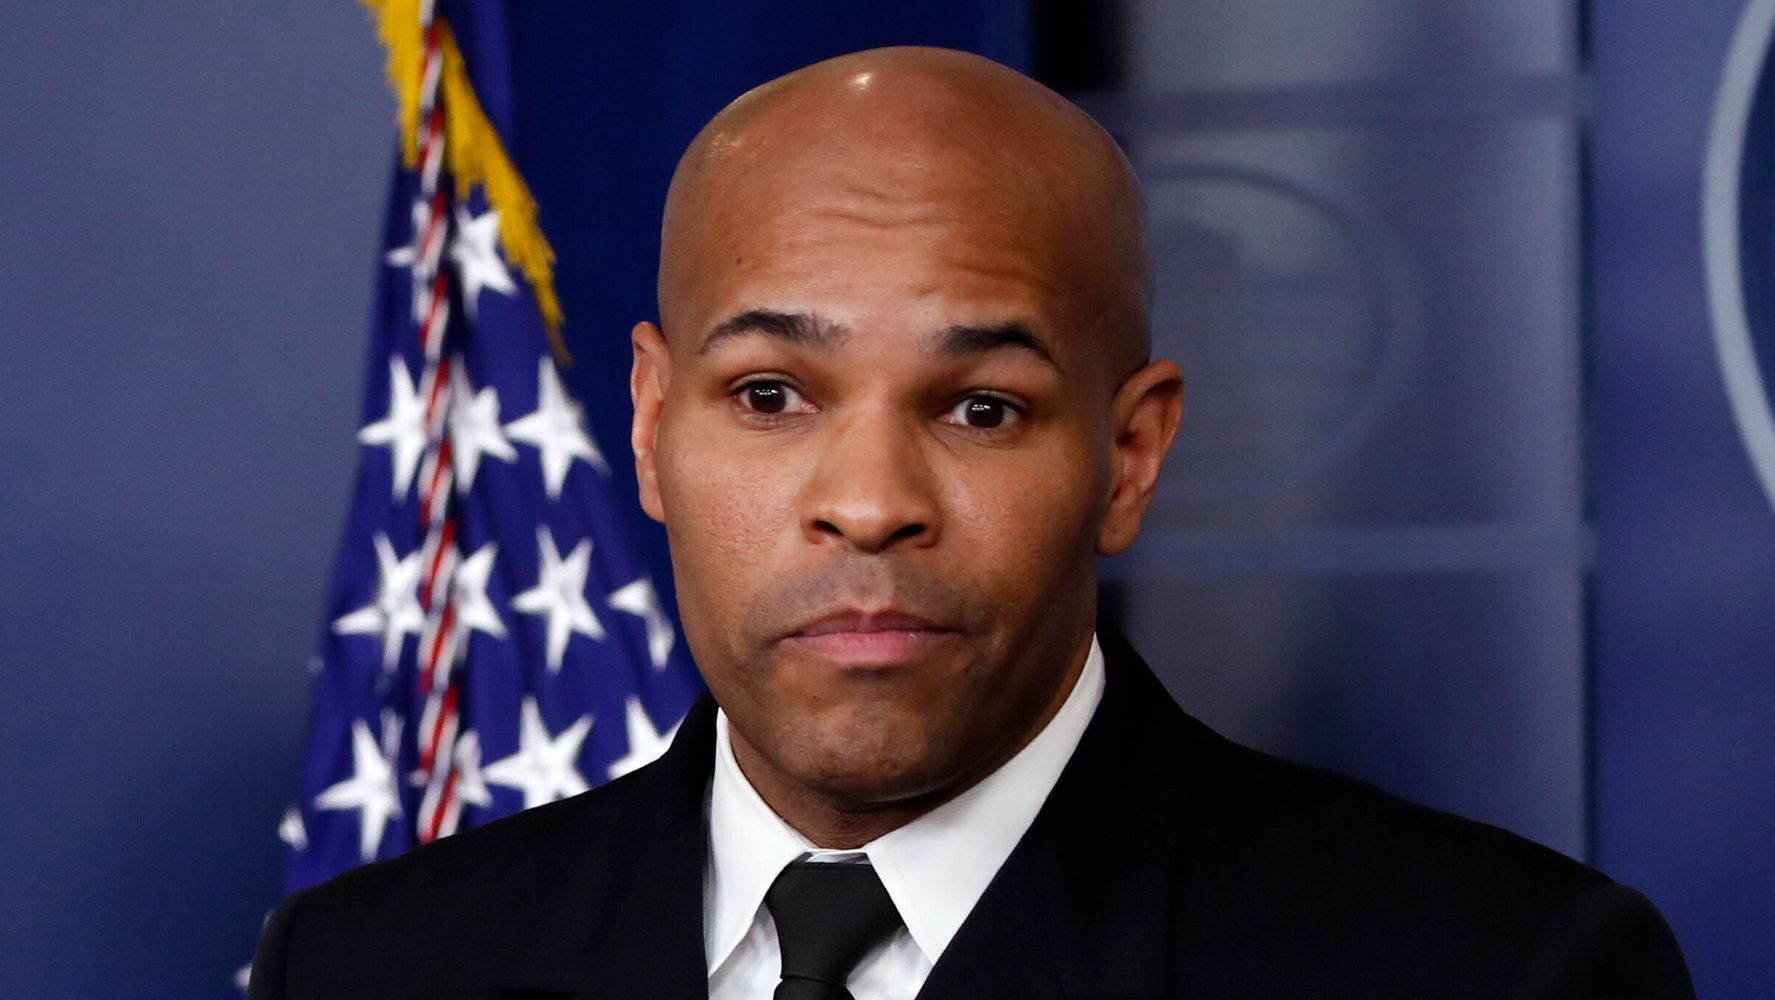 Surgeon General Singles Out People Of Color To Stop Alcohol, Drugs In COVID-19 Fight